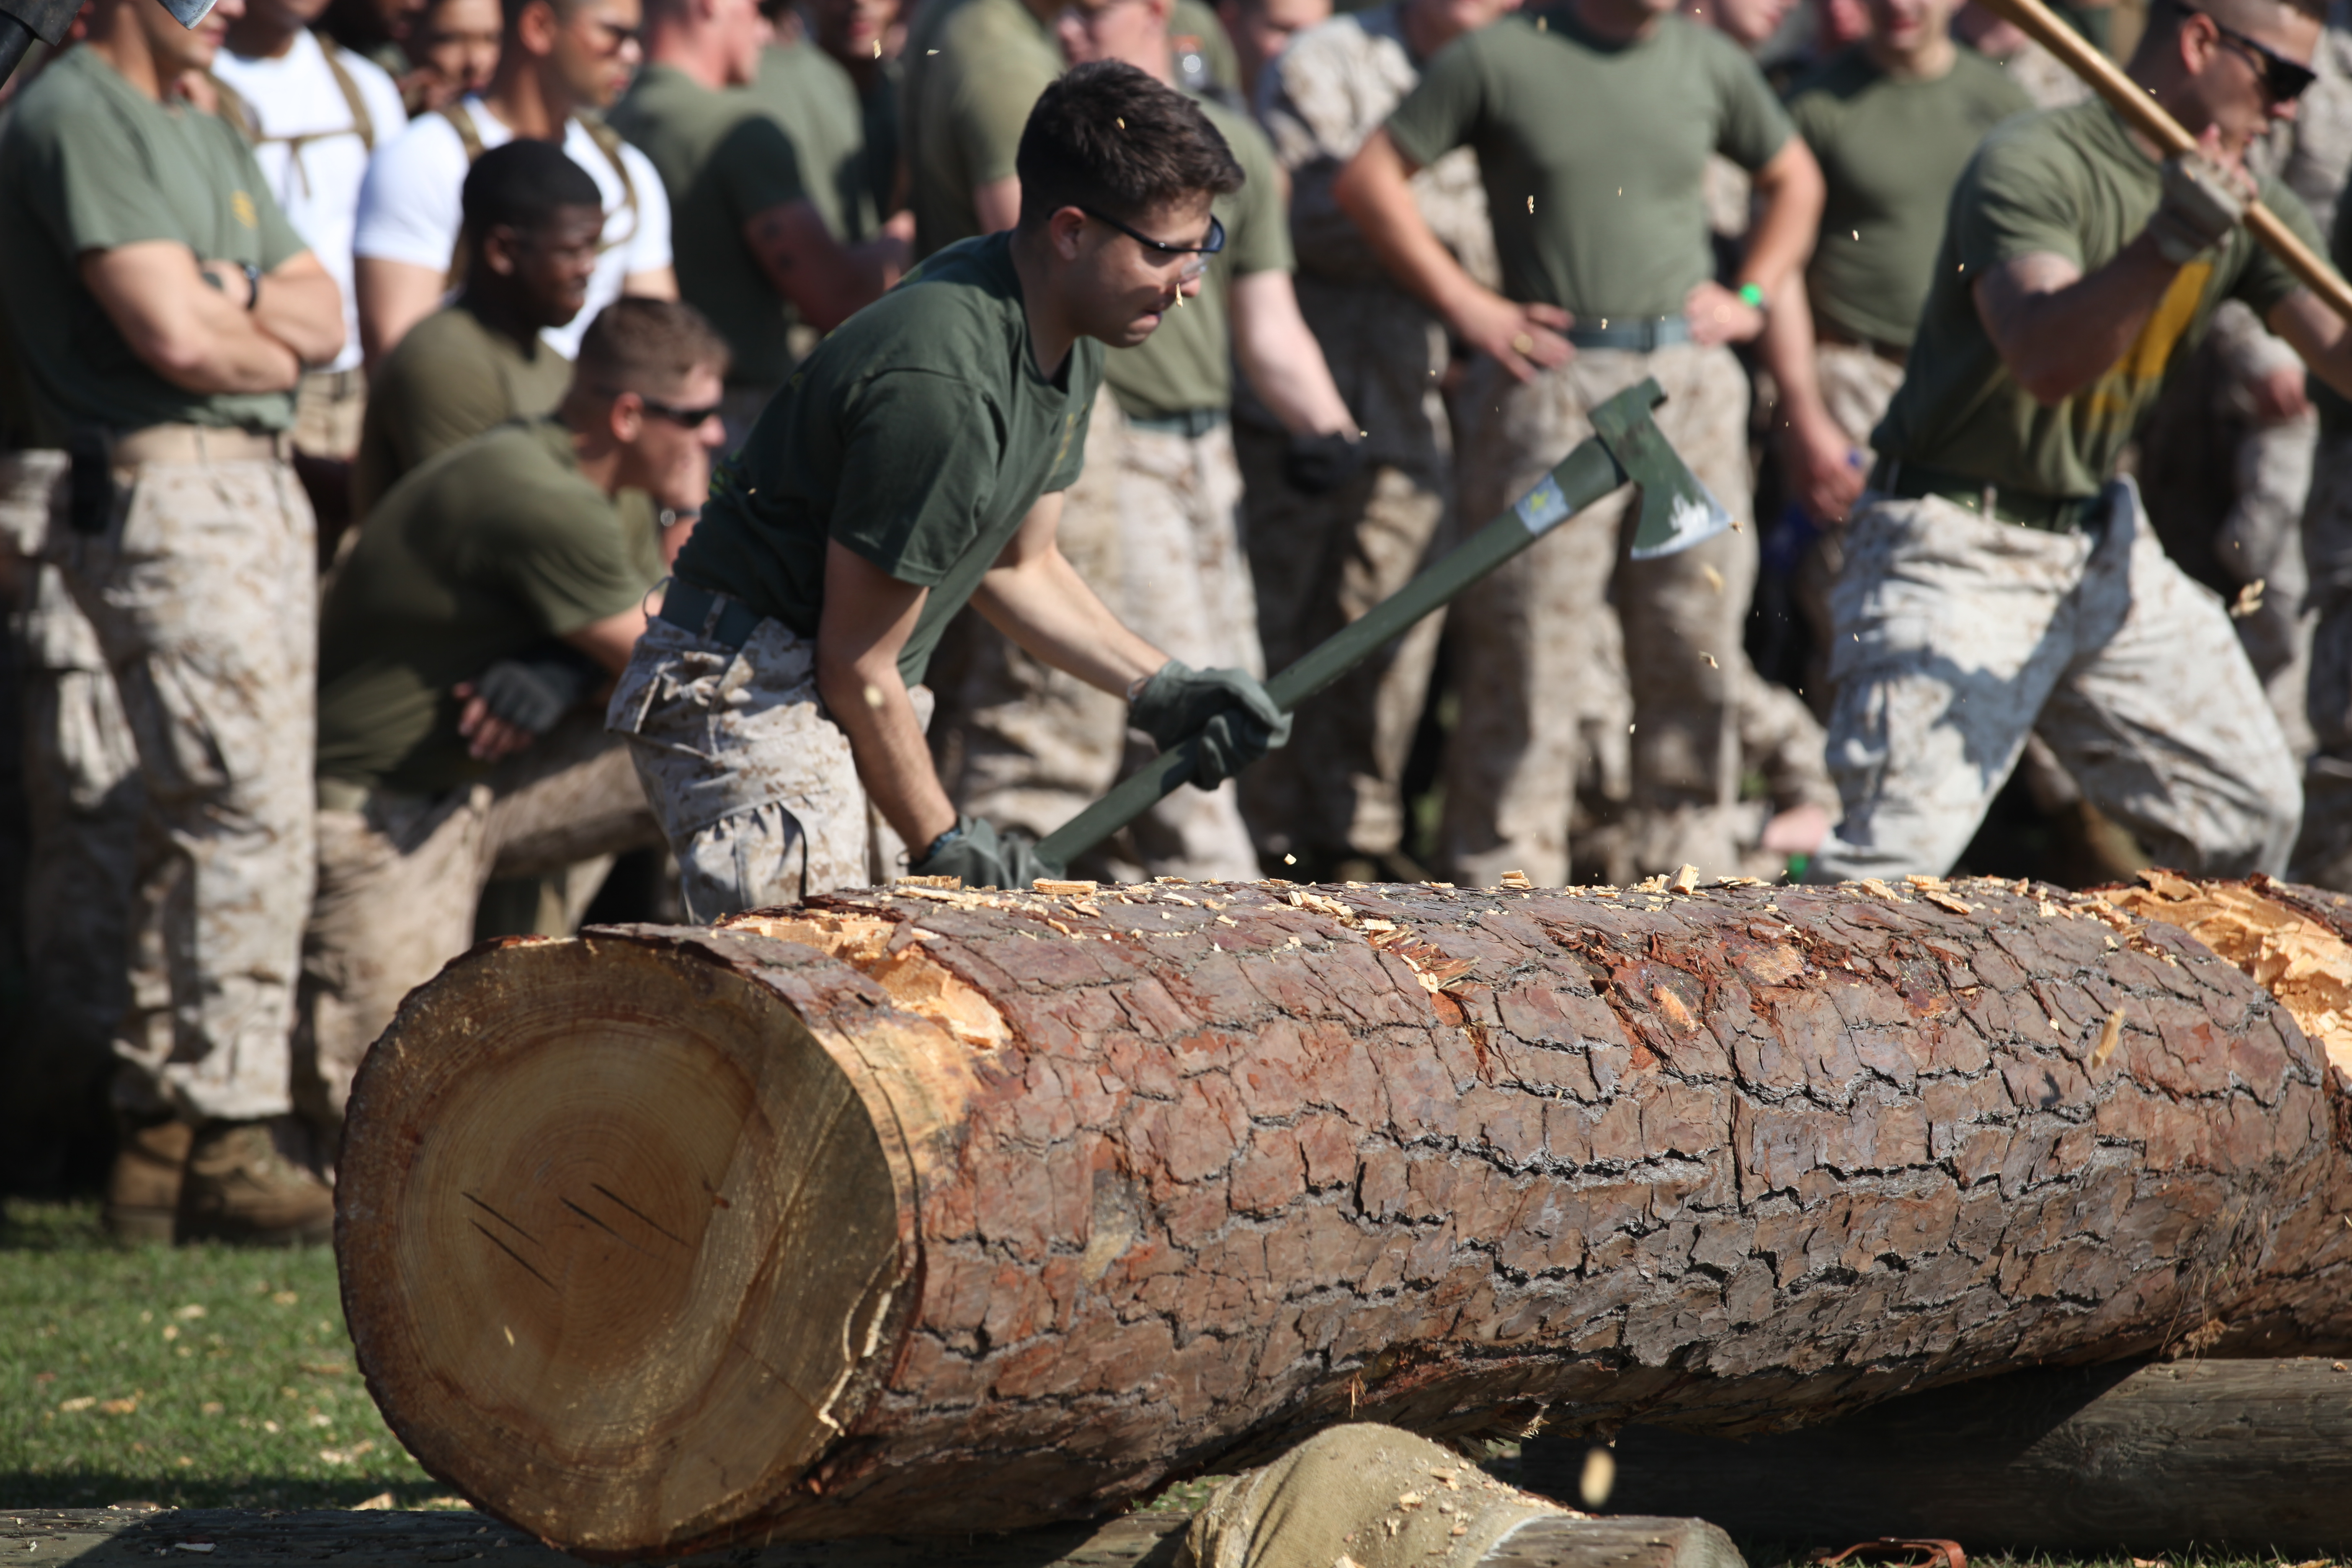 a4b6c407f Download Hi-Res Photo Download Share Photo Details Details. Marines compete  in a traditional water bucket relay during the annual Saint Patrick's Day  ...